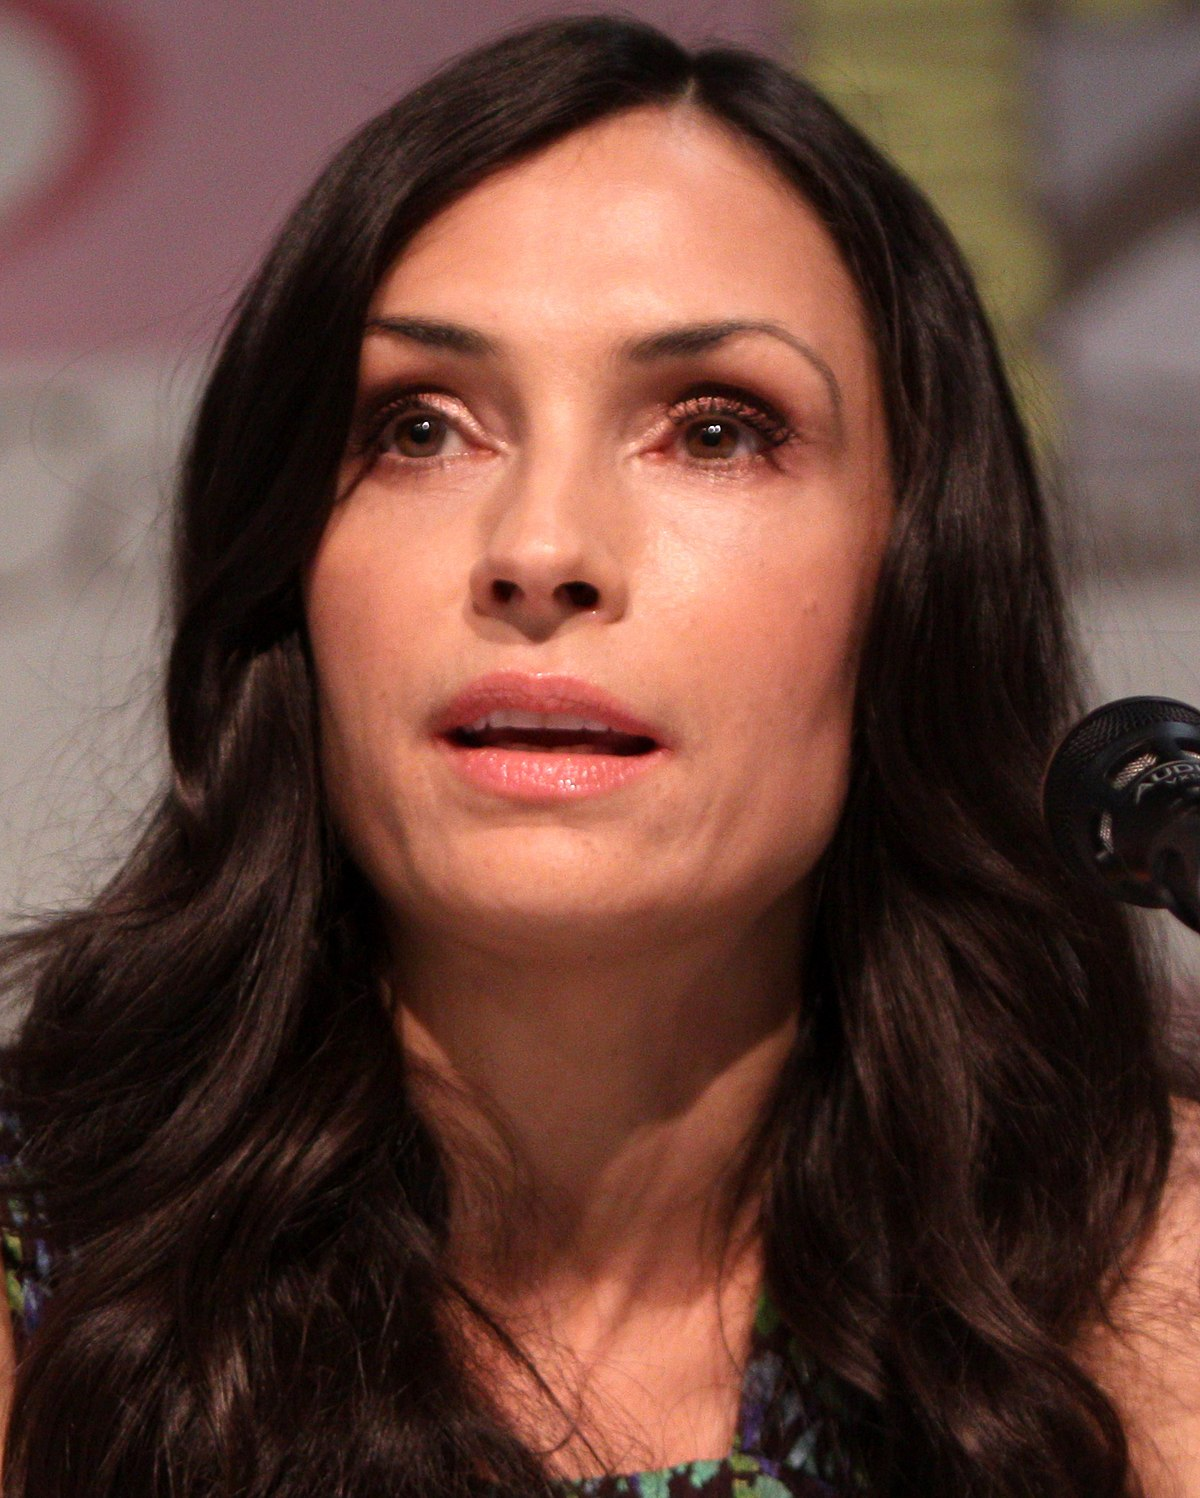 ICloud Famke Janssen nudes (47 foto and video), Sexy, Leaked, Twitter, in bikini 2017